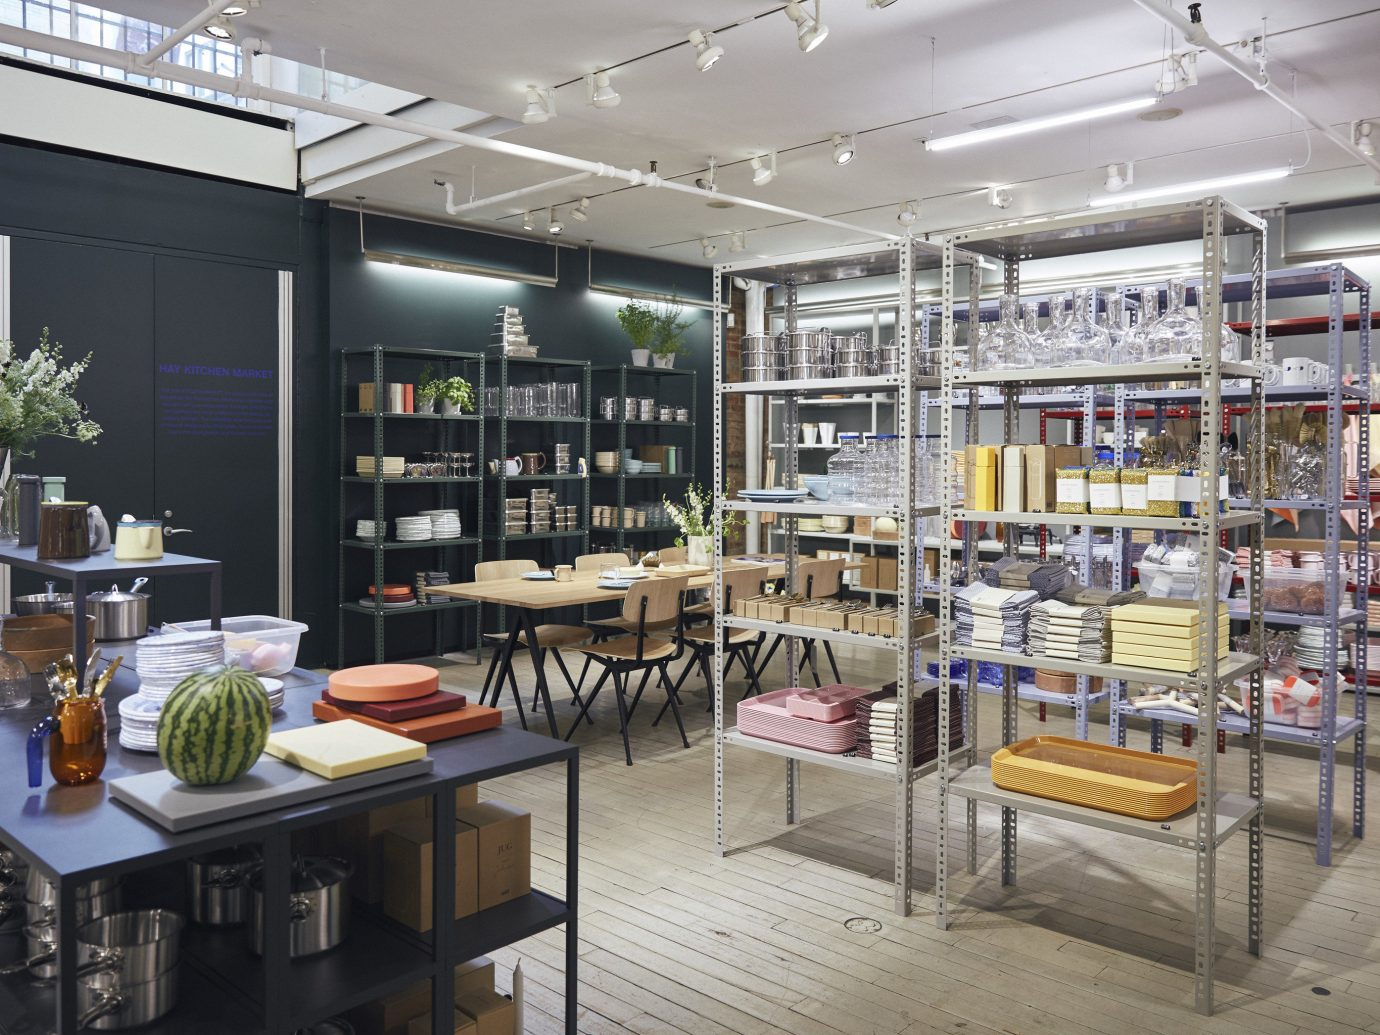 NYC Shops Style + Design indoor interior design retail café furniture